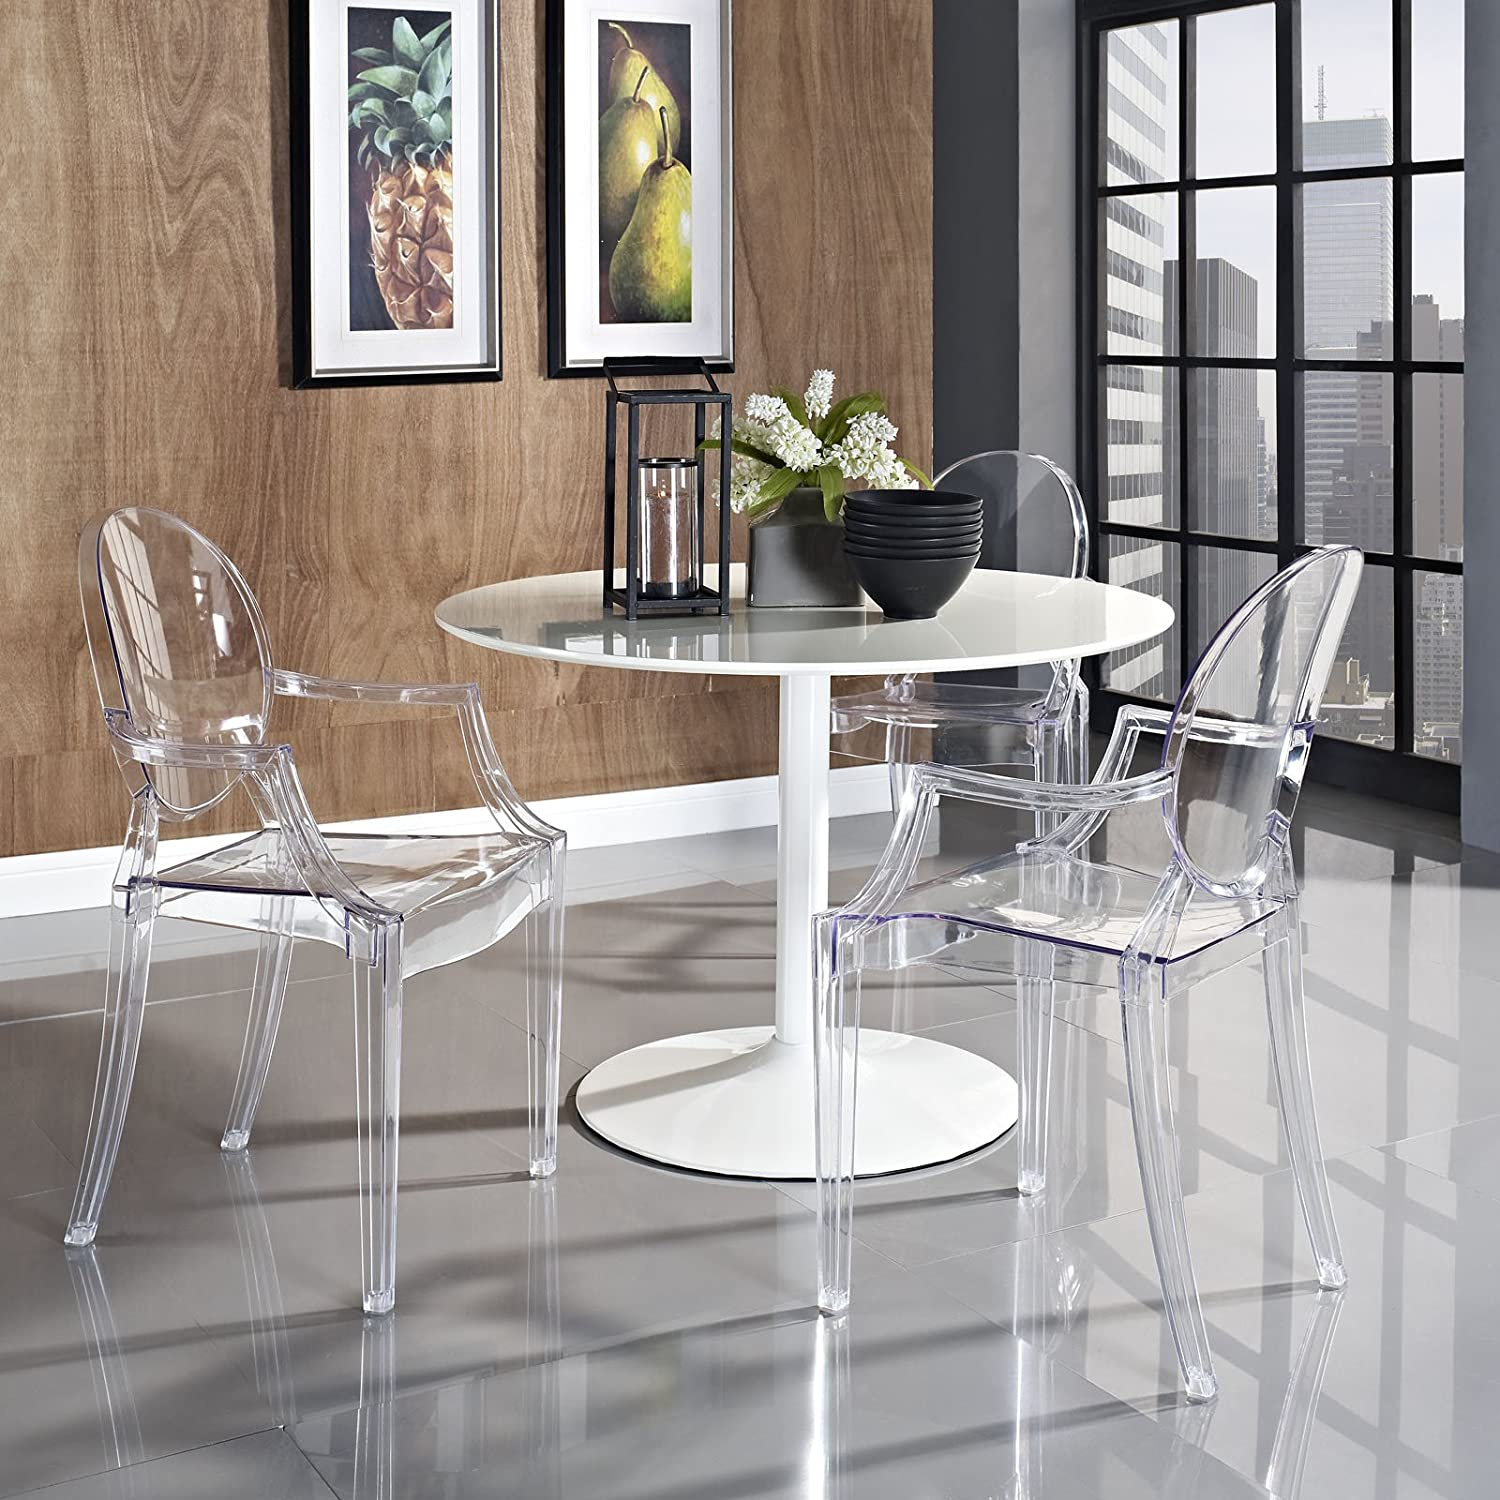 lexmod philippe starck style louis ghost chair in clear amazonca  - lexmod philippe starck style louis ghost chair in clear amazonca home kitchen